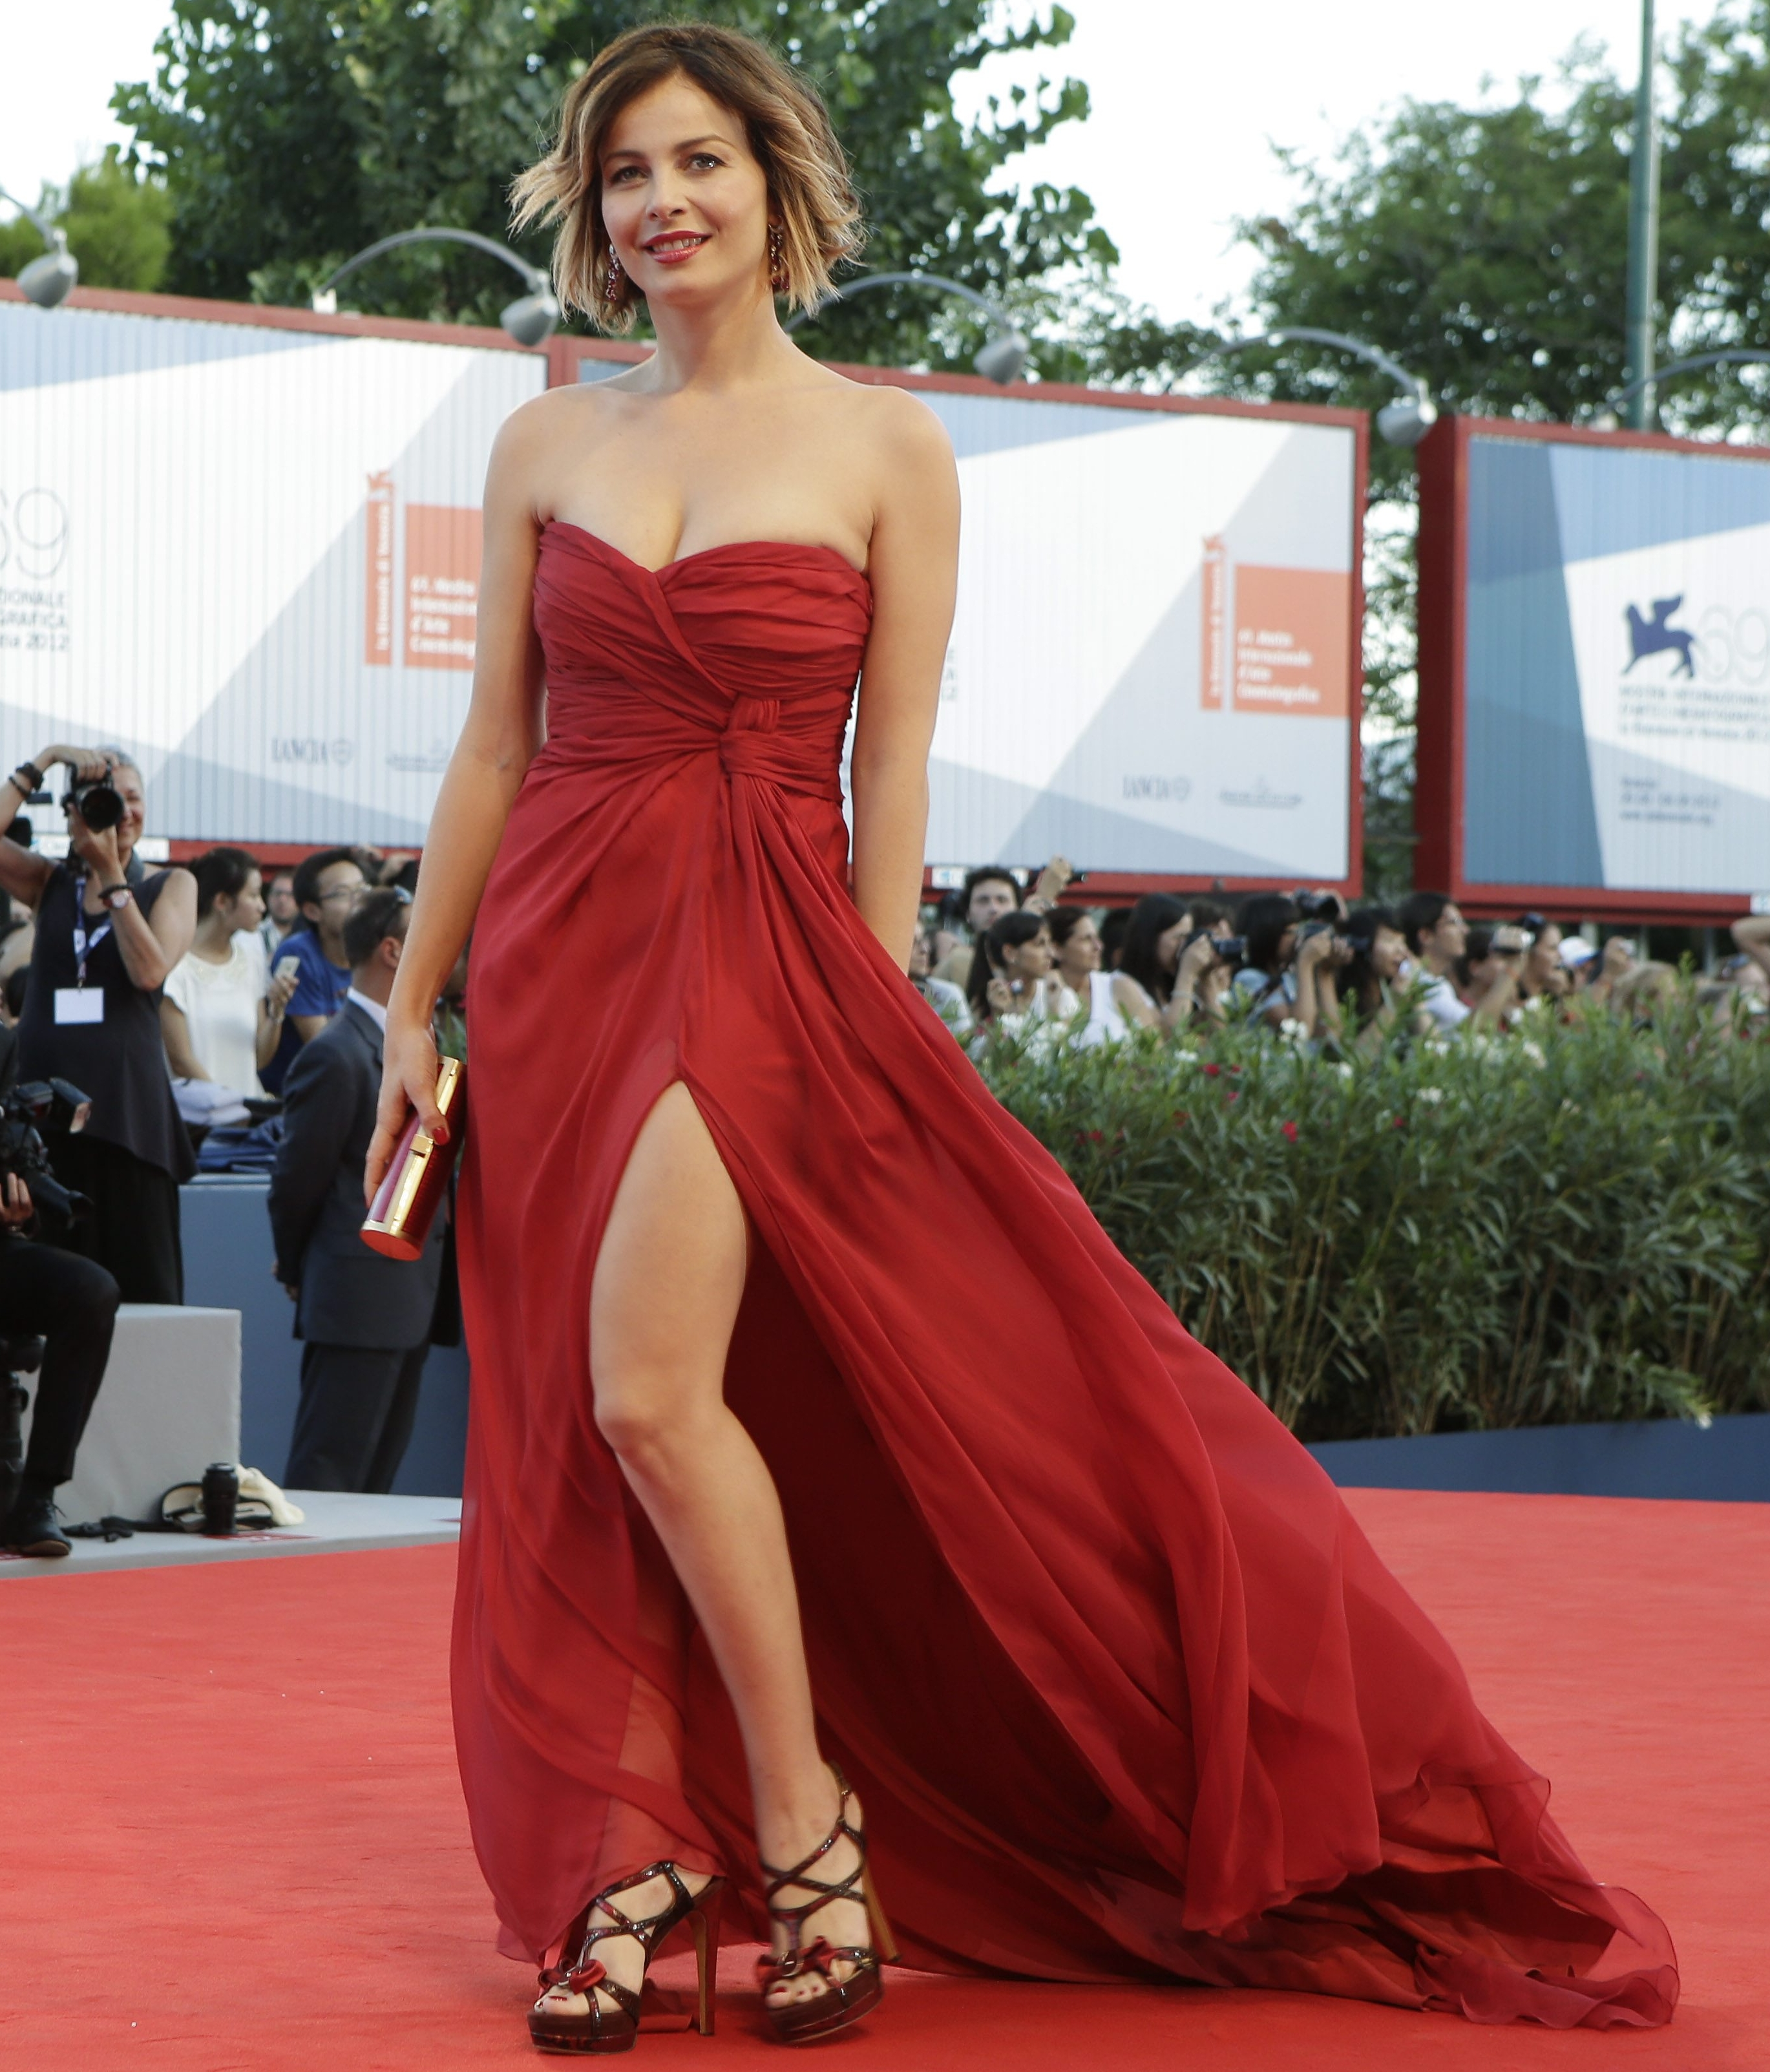 Actress Violante Placido arrives for the premiere of the movie 'The Reluctant Fundamentalist' that opens the 69th edition of the Venice Film Festival in Venice, Italy, Wednesday, Aug. 29, 2012. (AP Photo/Andrew Medichini)